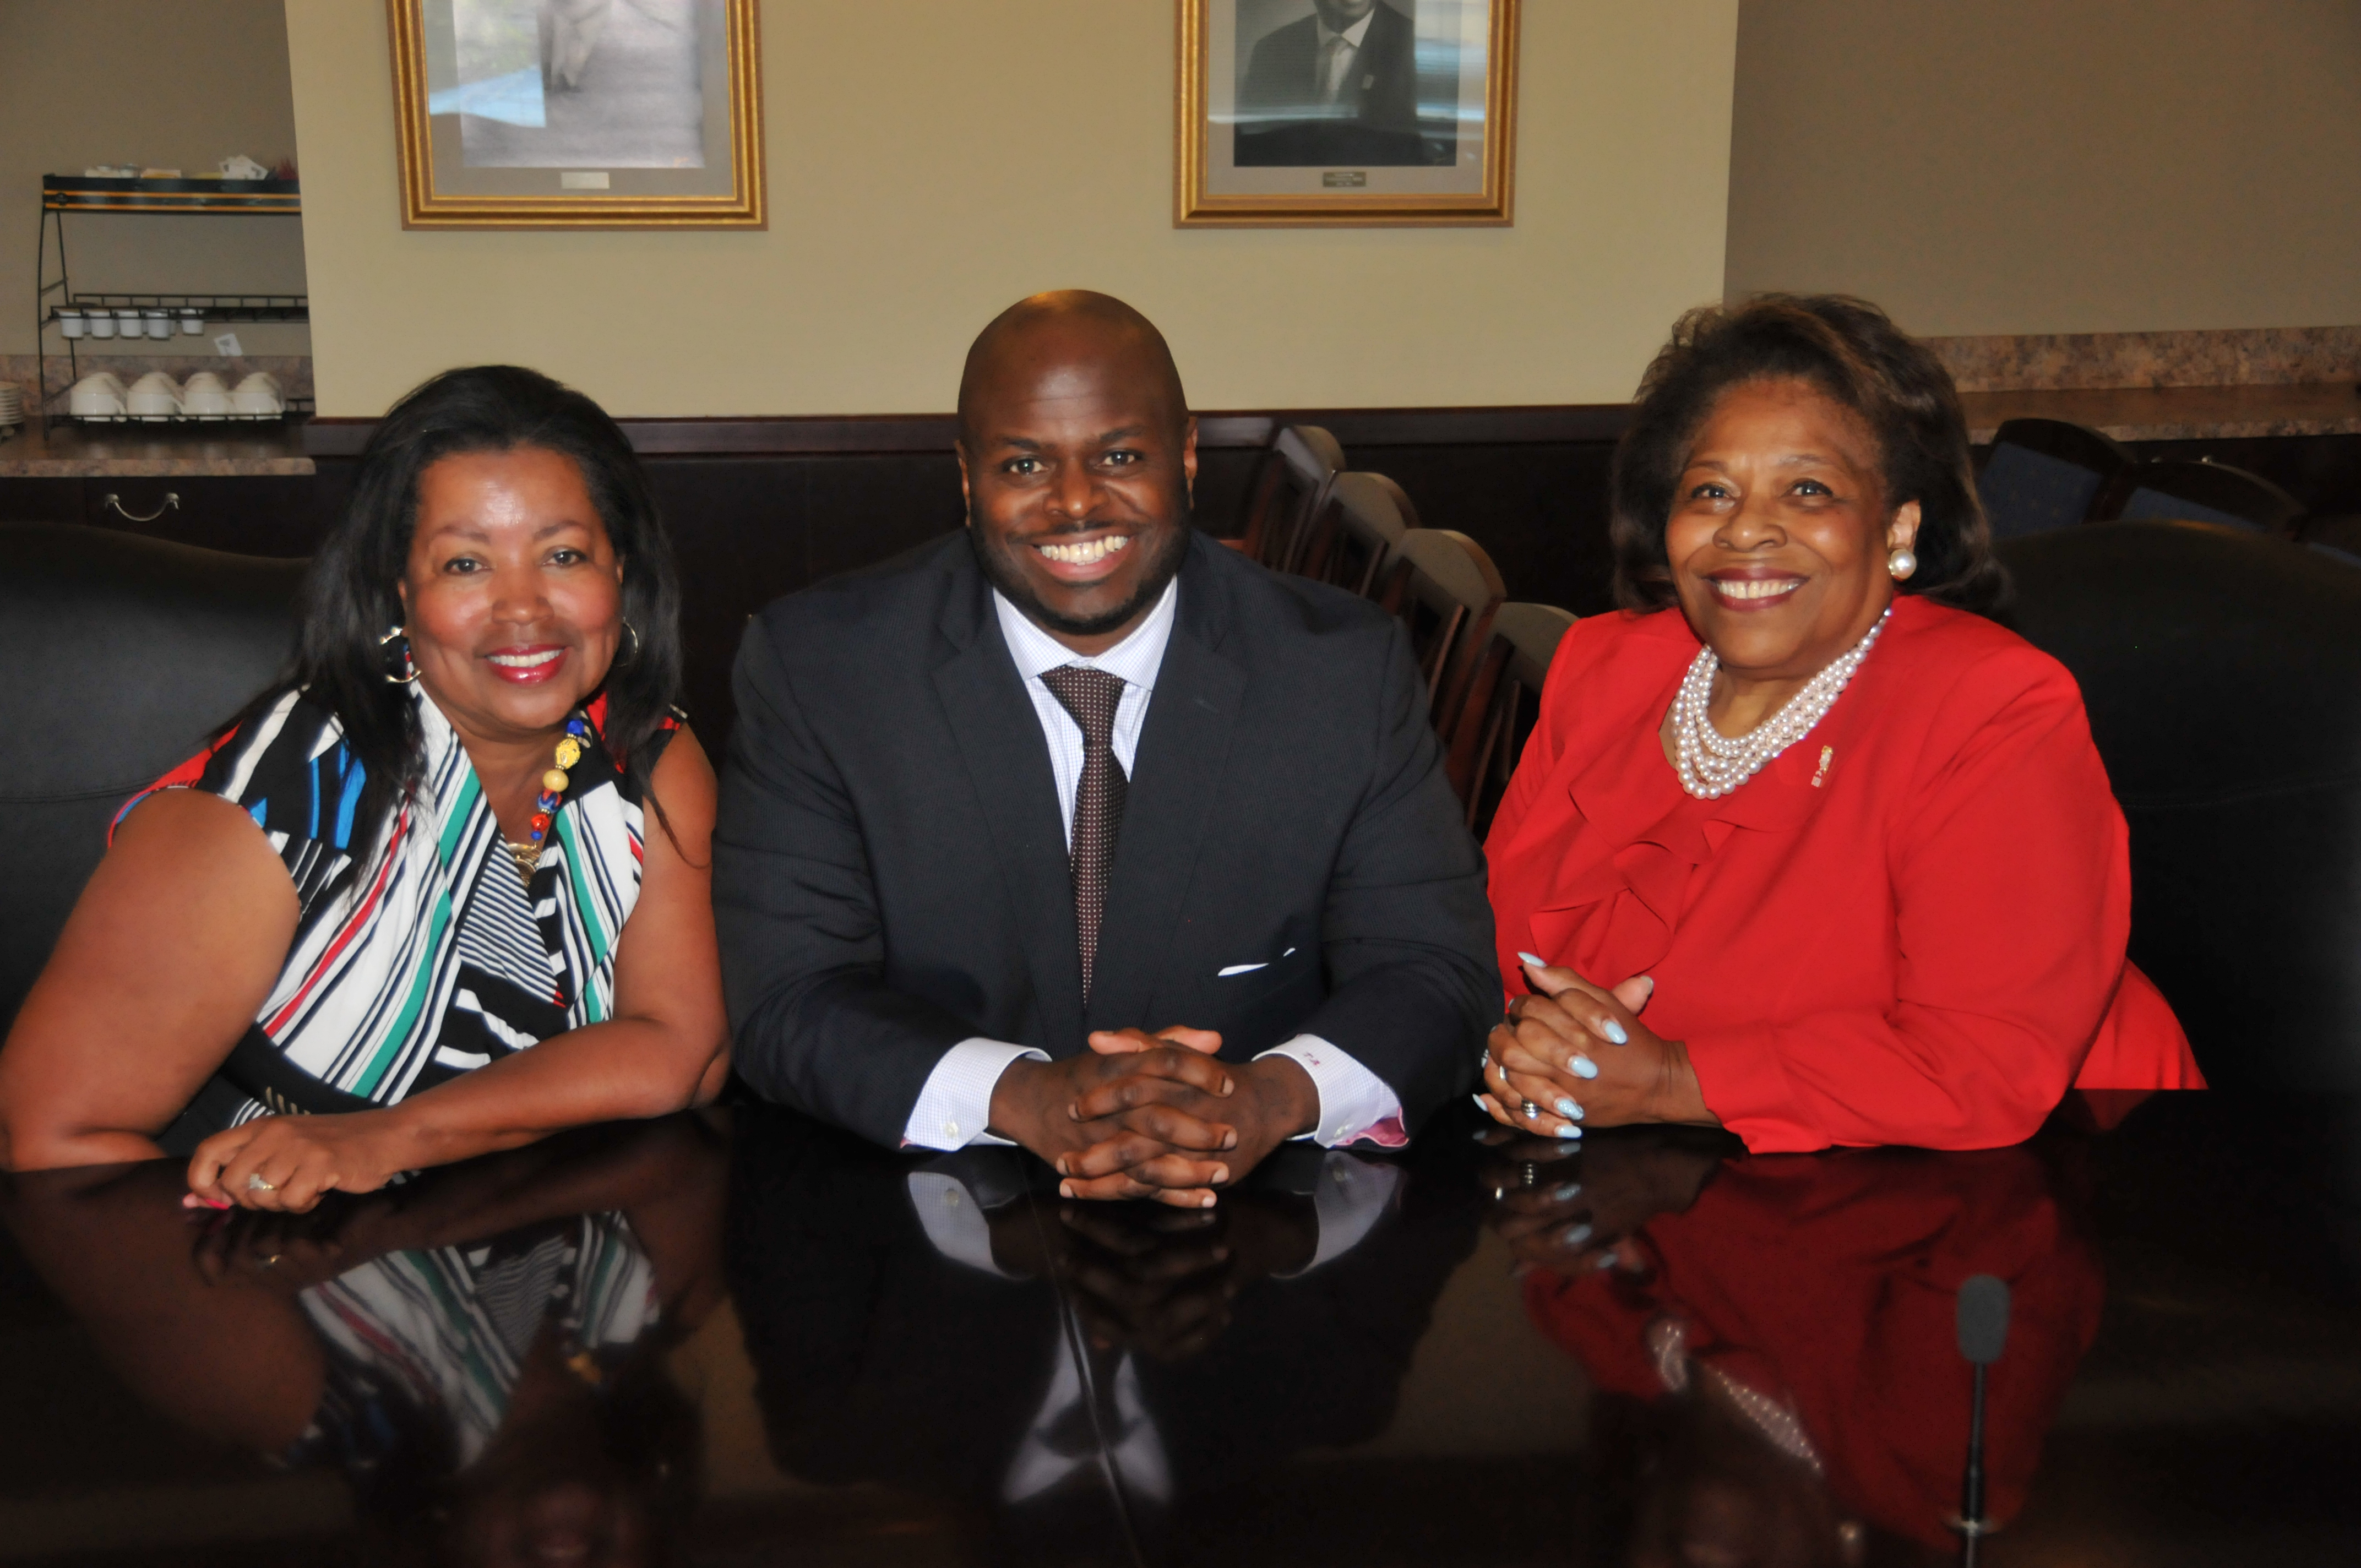 DSU new leadership trio: Board Vice Chair Dr. Devona Williams, Provost Dr. Tony Allen and Board Chair Dr. Wilma Mishoe.